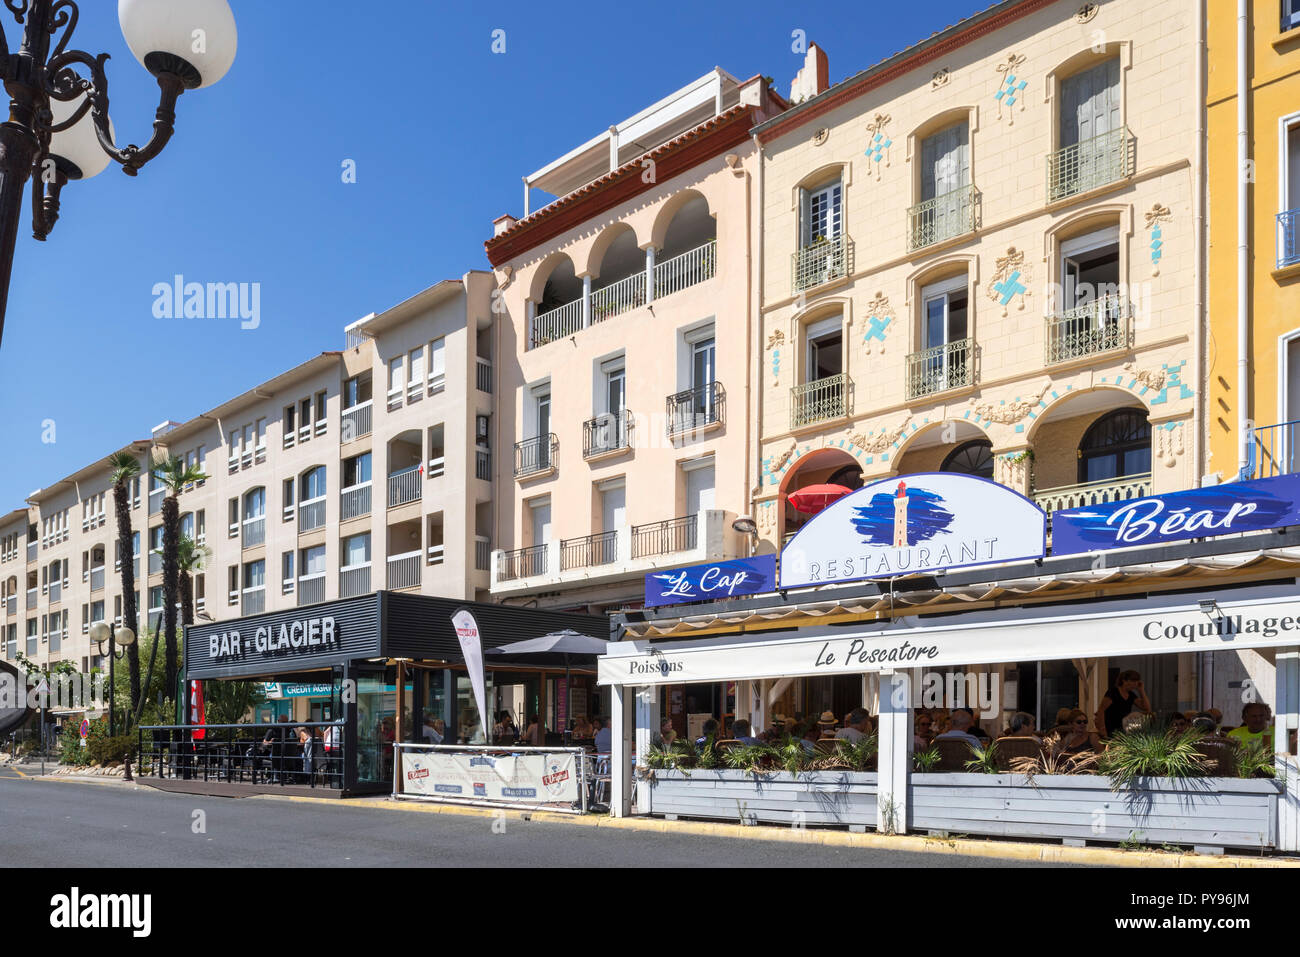 Fish restaurant and bars along the harbour at Port-Vendres, Mediterranean fishing port along the Côte Vermeille, Pyrénées-Orientales, France - Stock Image